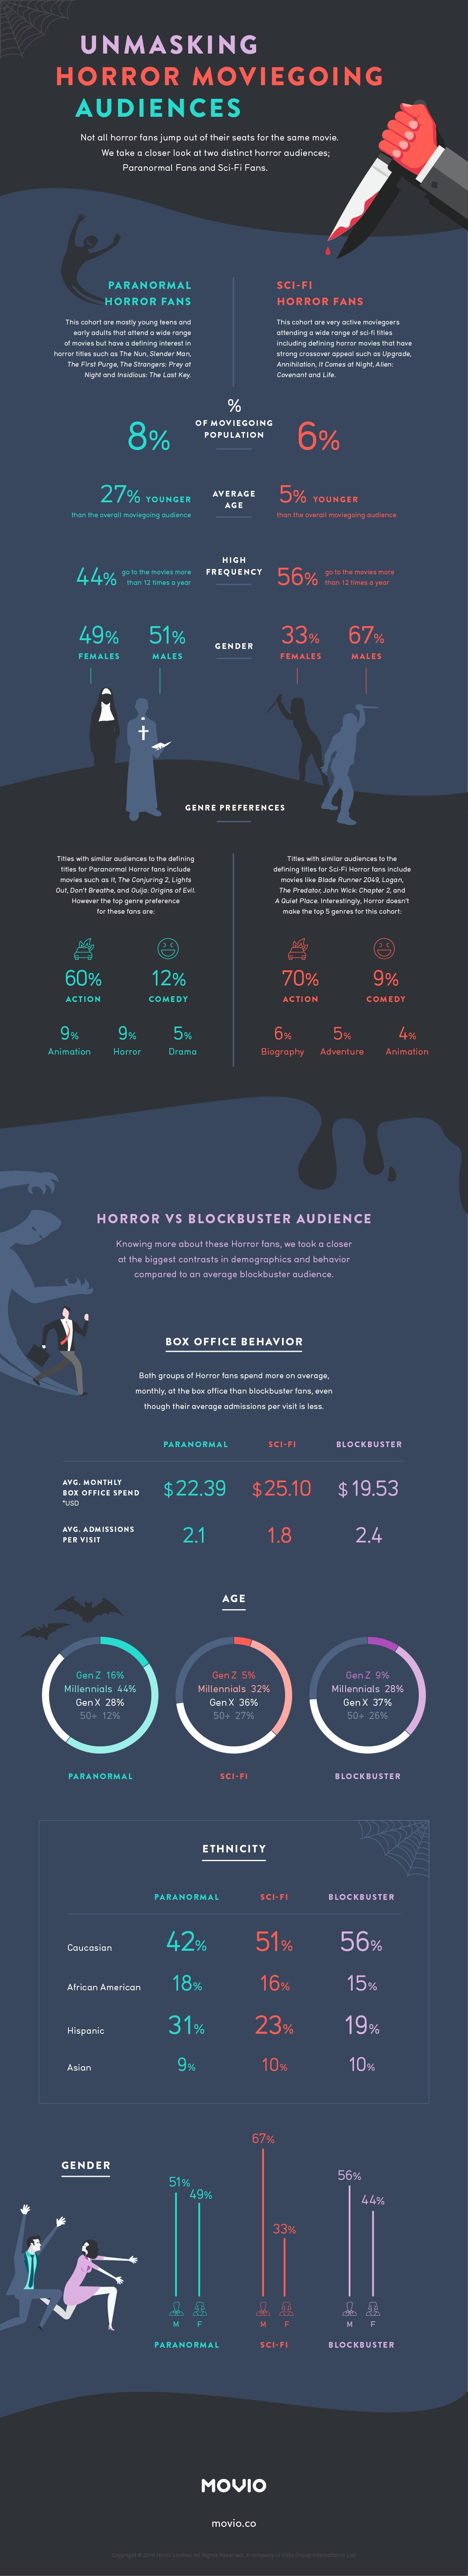 Movio Horror Insights Infographic 2018 Final.jpg